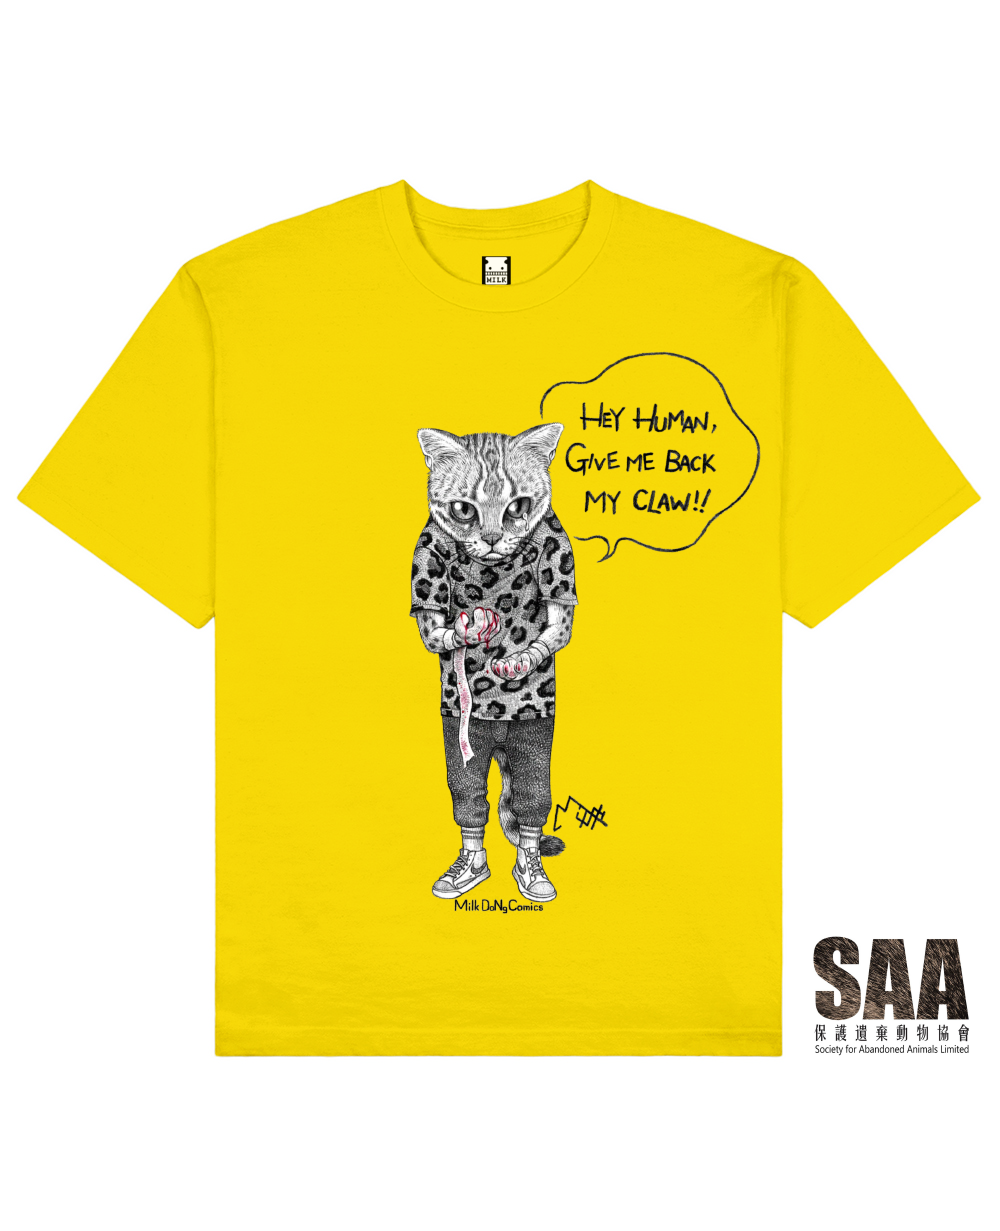 CLAWLESS CAT Printed T-Shirt in Yellow - T-Shirts - Milk DoNg Comics - BRANMA